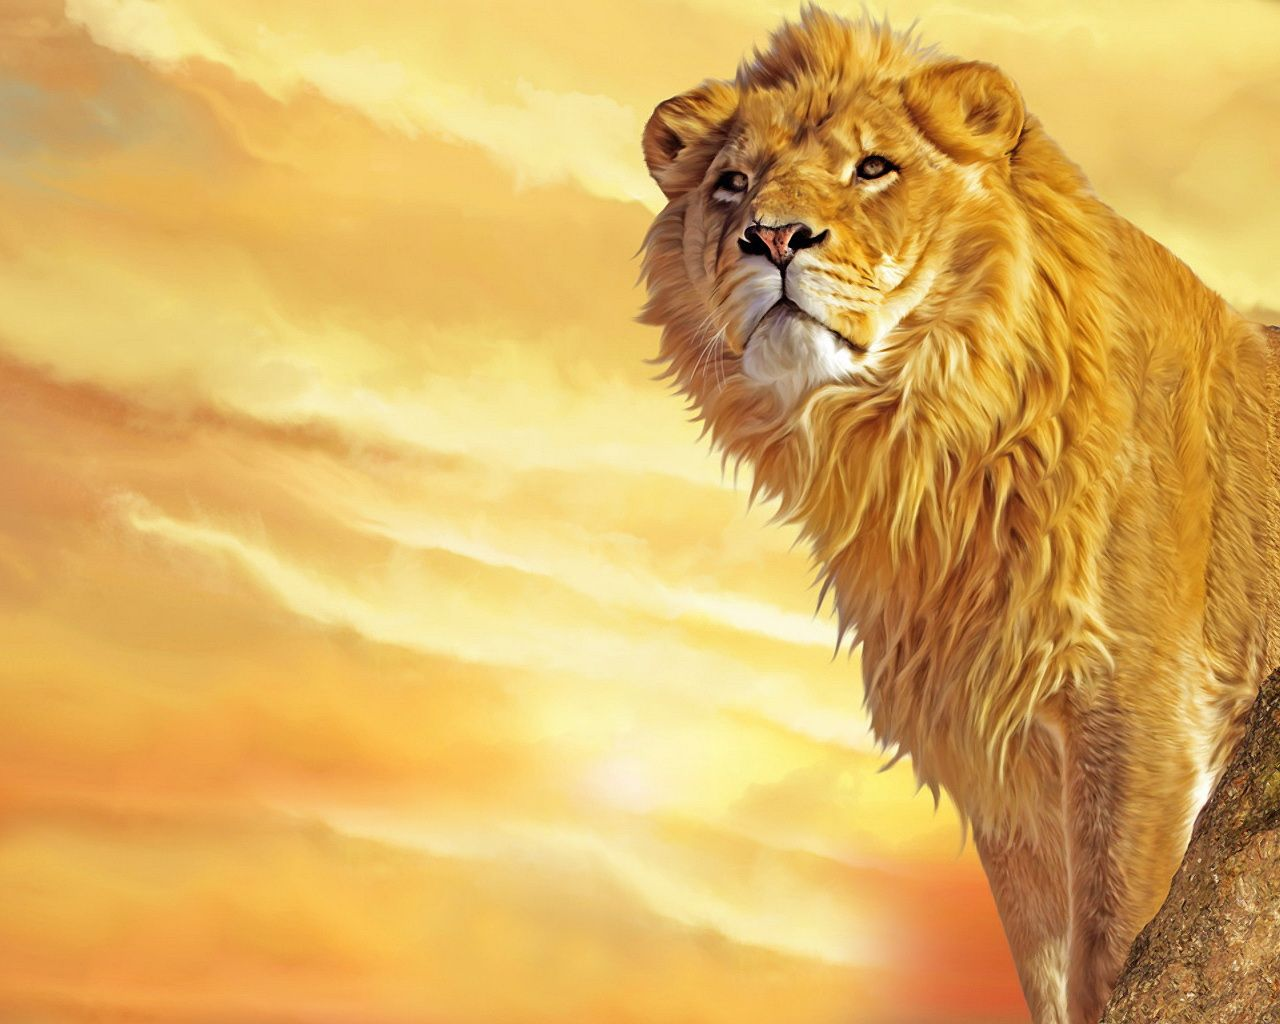 10 Different Types Of Lions With Fact And Pictures Lion Hd Wallpaper Lion Pictures Lion Wallpaper